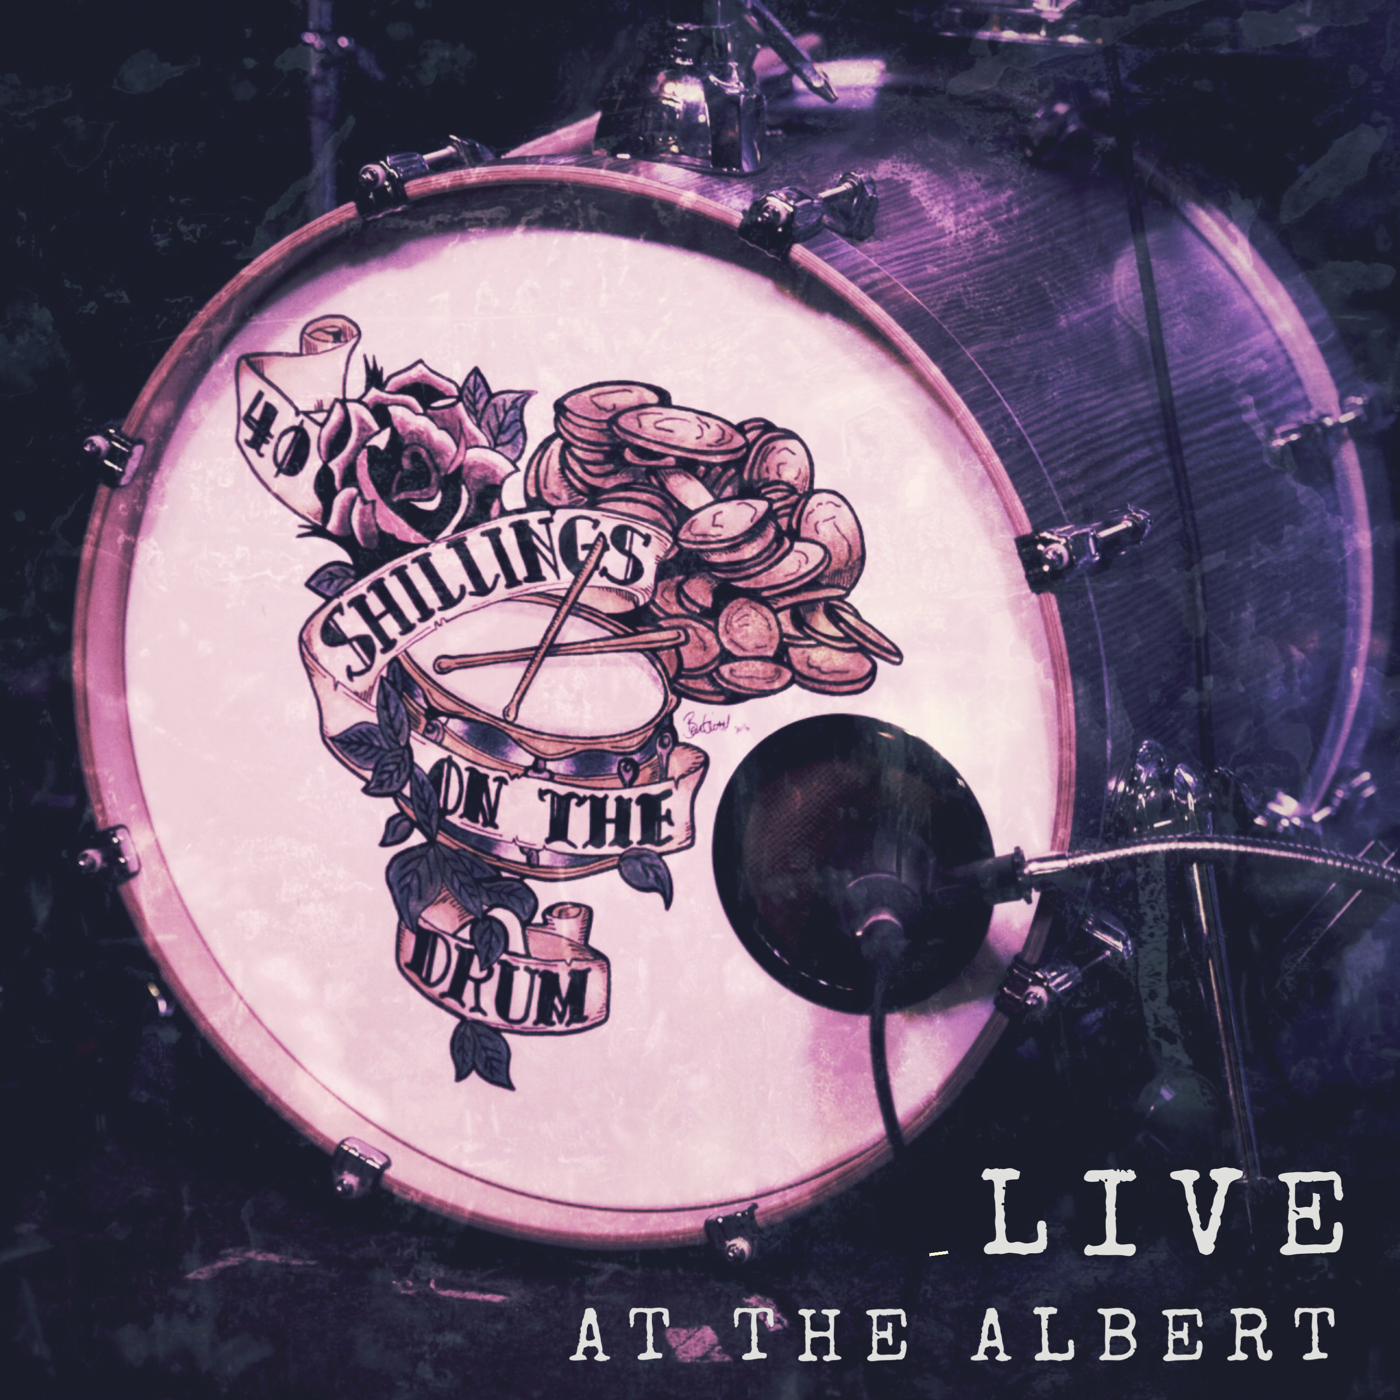 Live at the Albert (Live Album Download) - 40 Shillings on the Drum